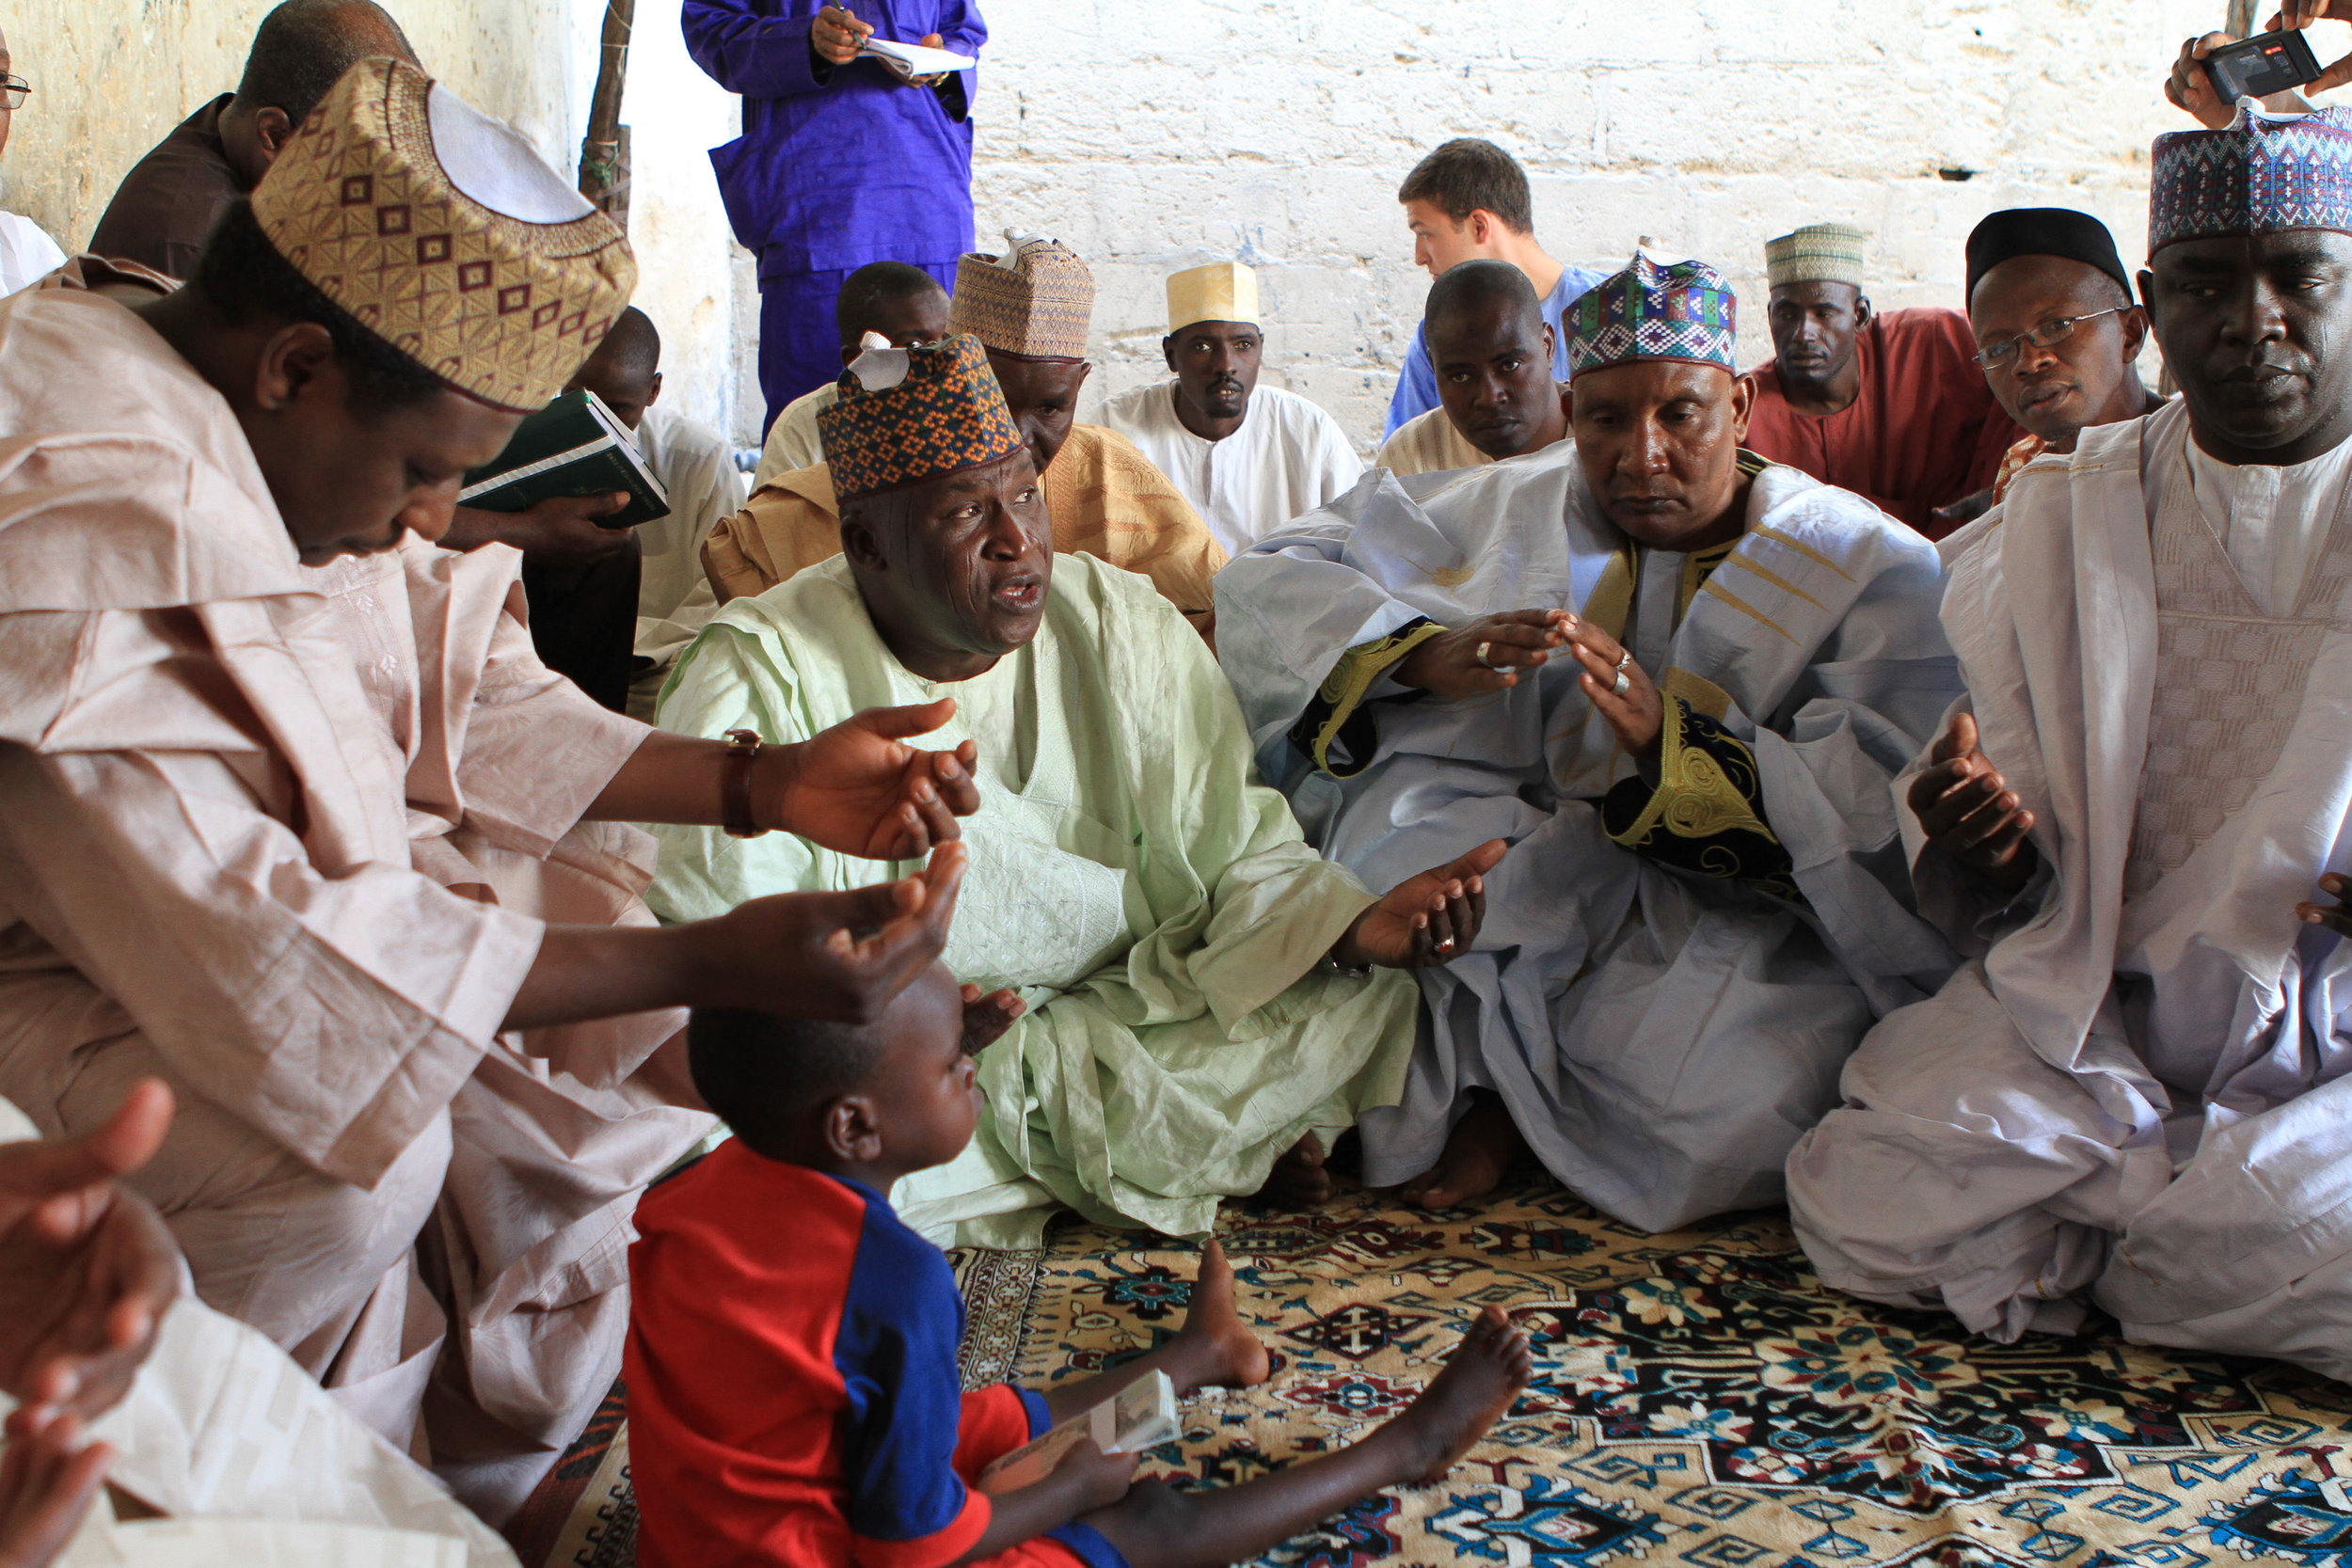 Here, we visit a family whose son was paralysed by polio. The men discuss the situation, and pray over the child.